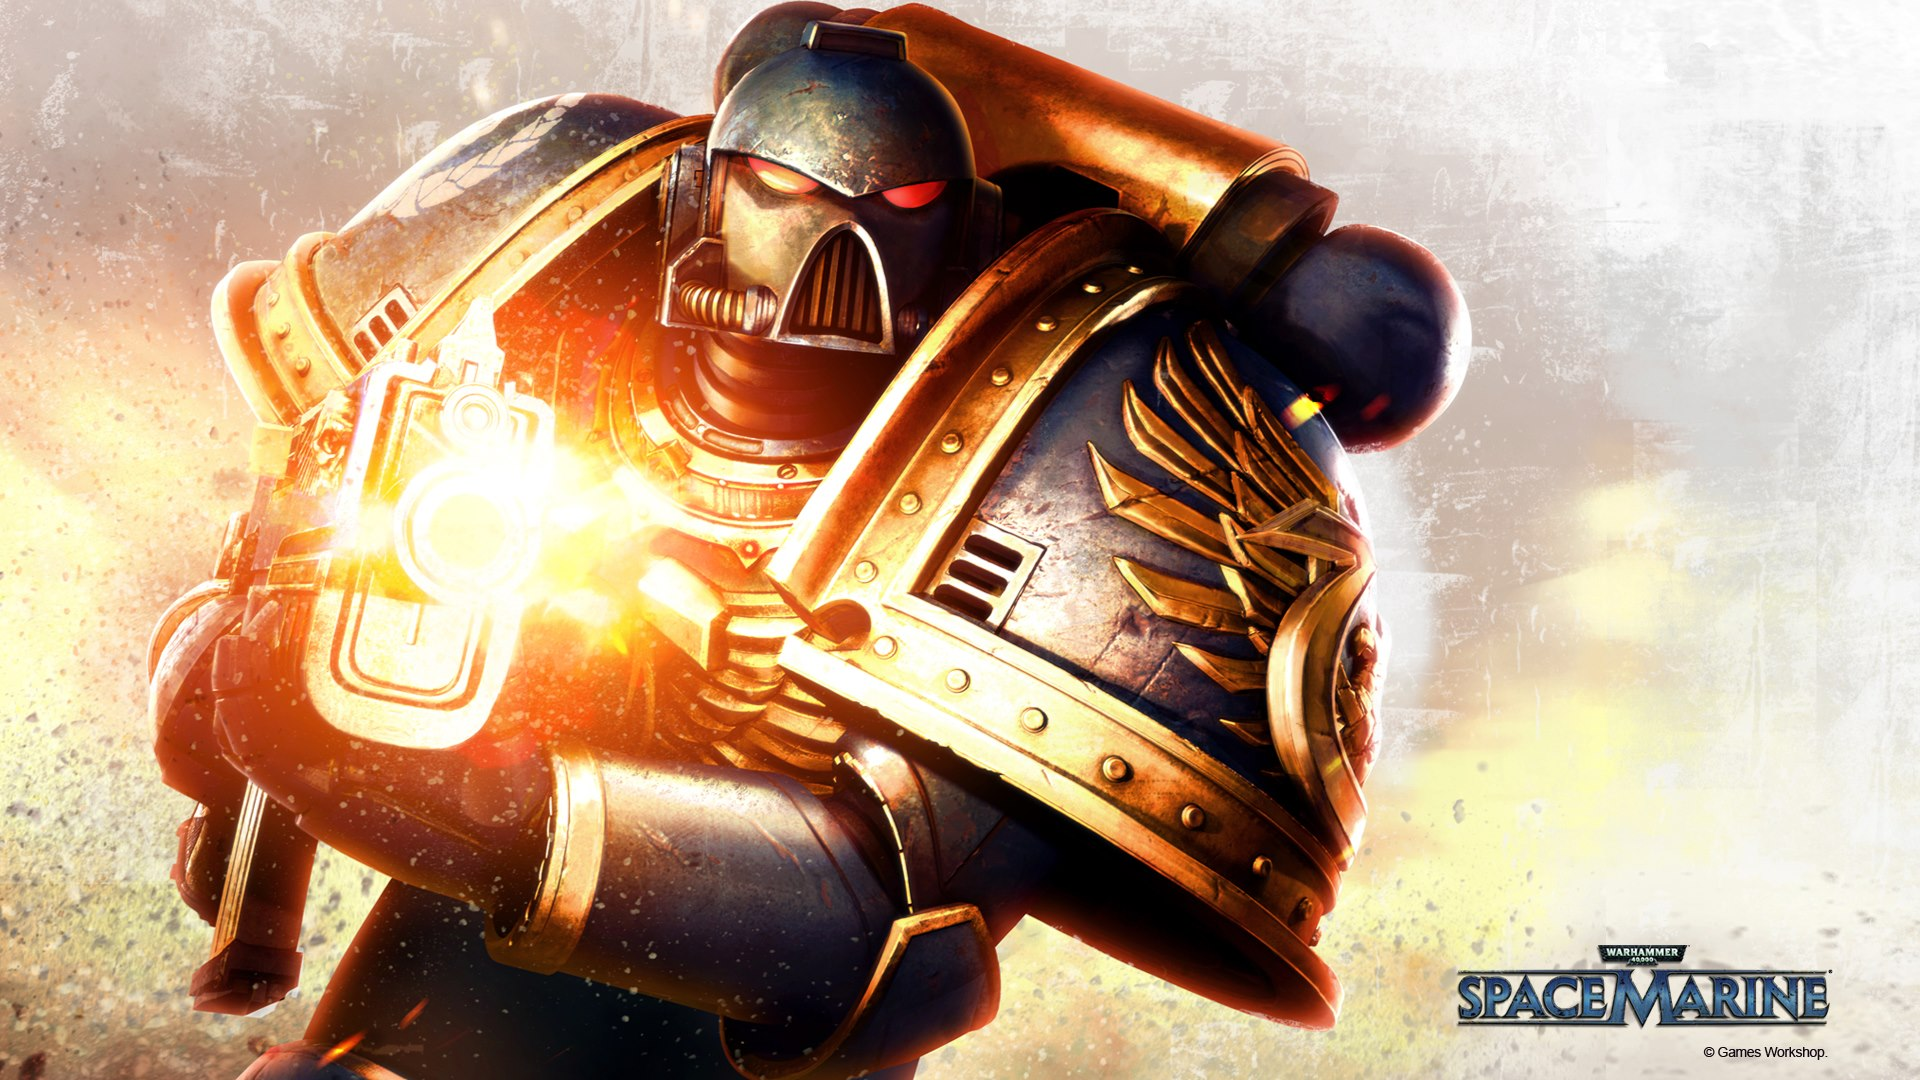 Space Marine wallpapers image   Warhammer 40K Fan Group   Mod DB 1920x1080